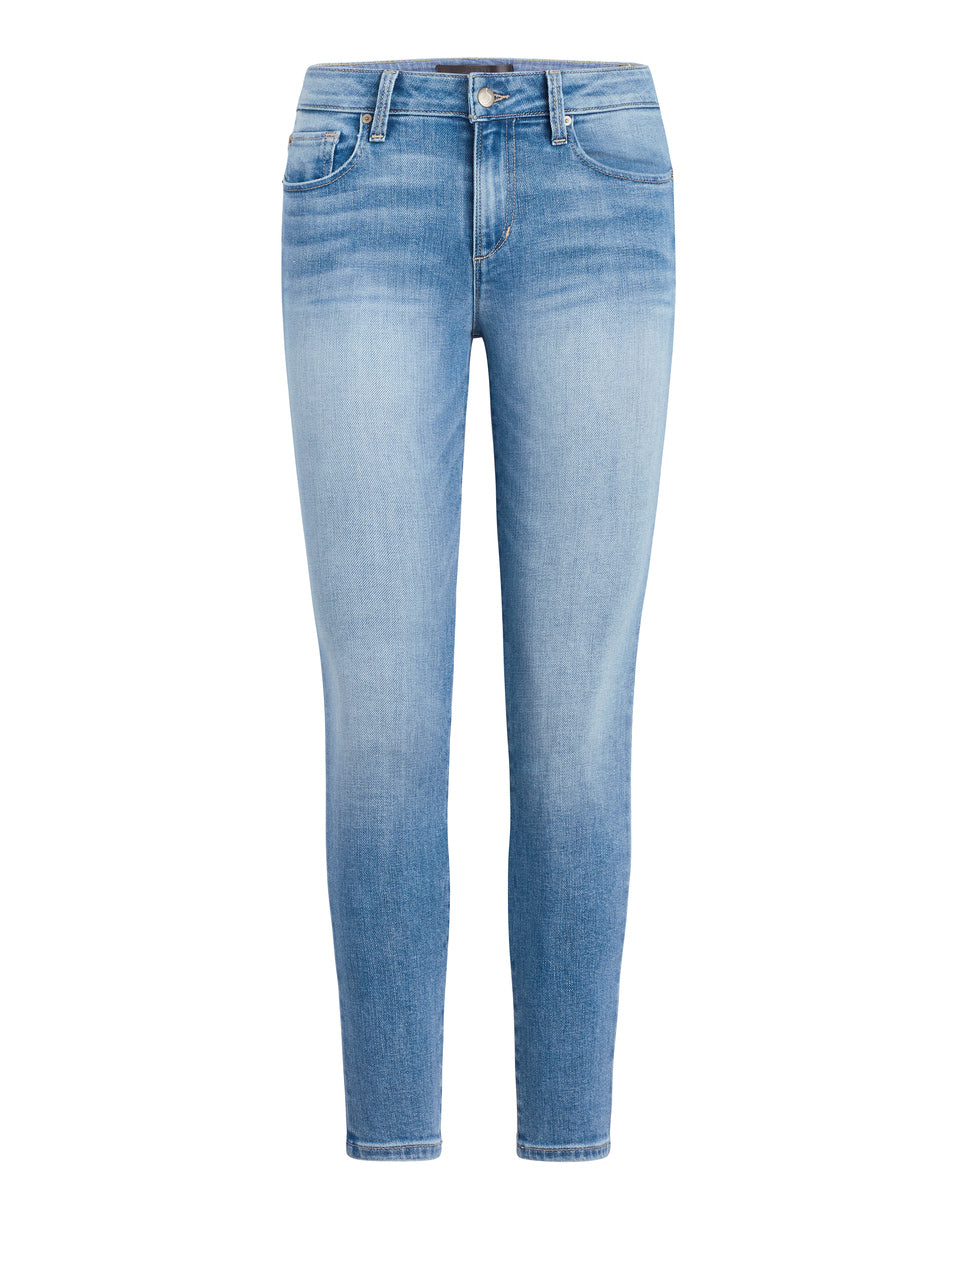 The Icon Ankle Dita Joe's Jeans